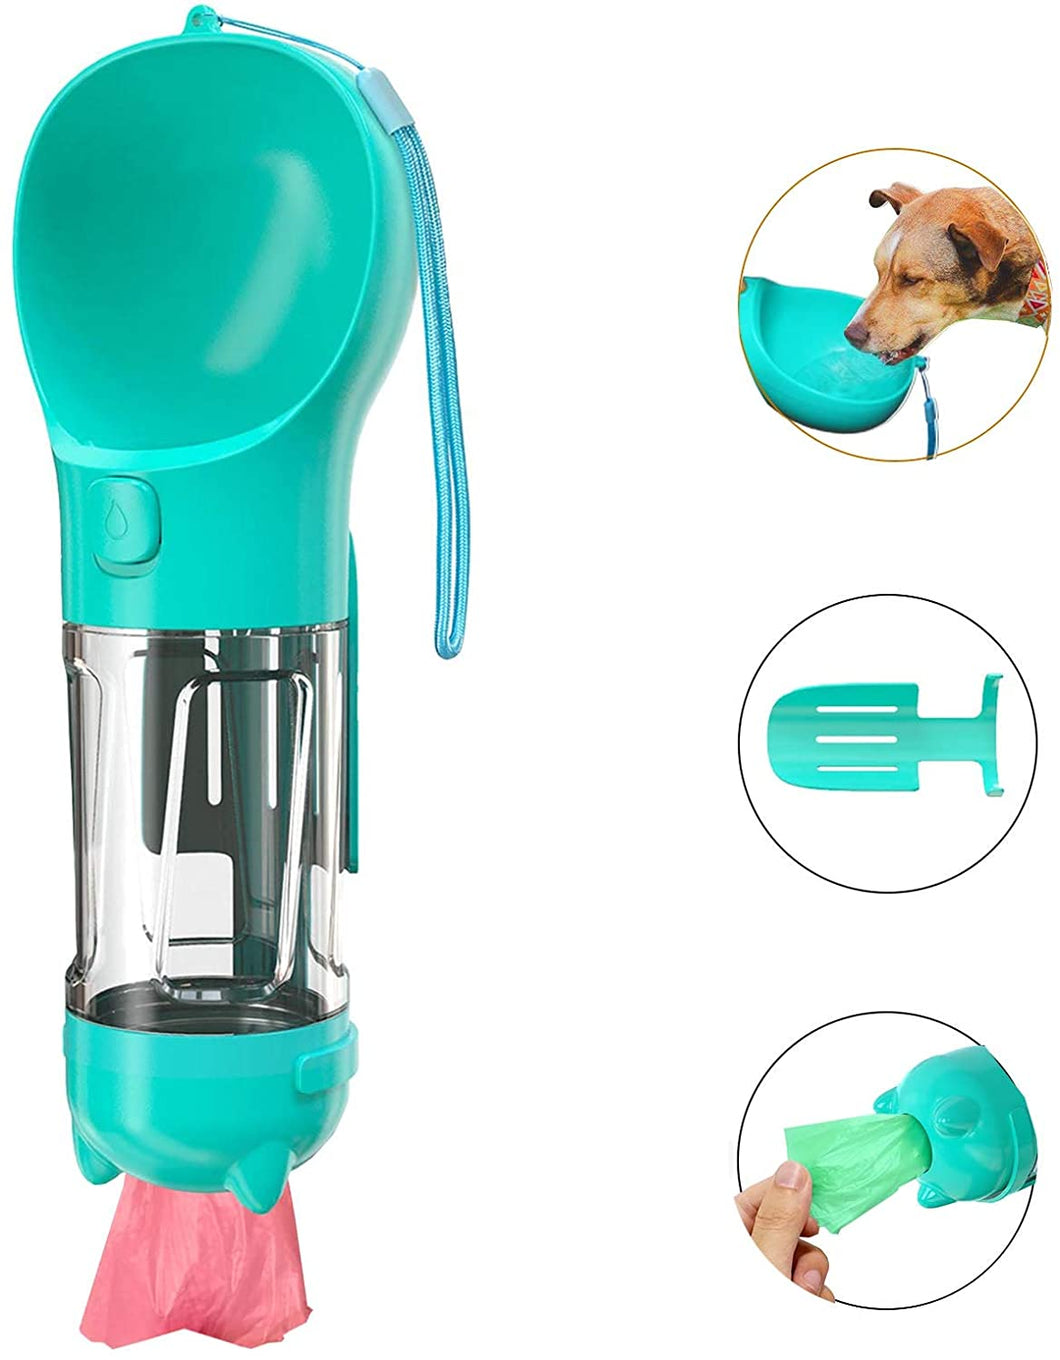 Portable Dog Water Bottle for Walking with Poop Bag and Scooper Pet Travel Water Dispenser Leak Proof BPA Free Drinking Bowl for Large Medium Small Dogs. Camping Hiking Travelling